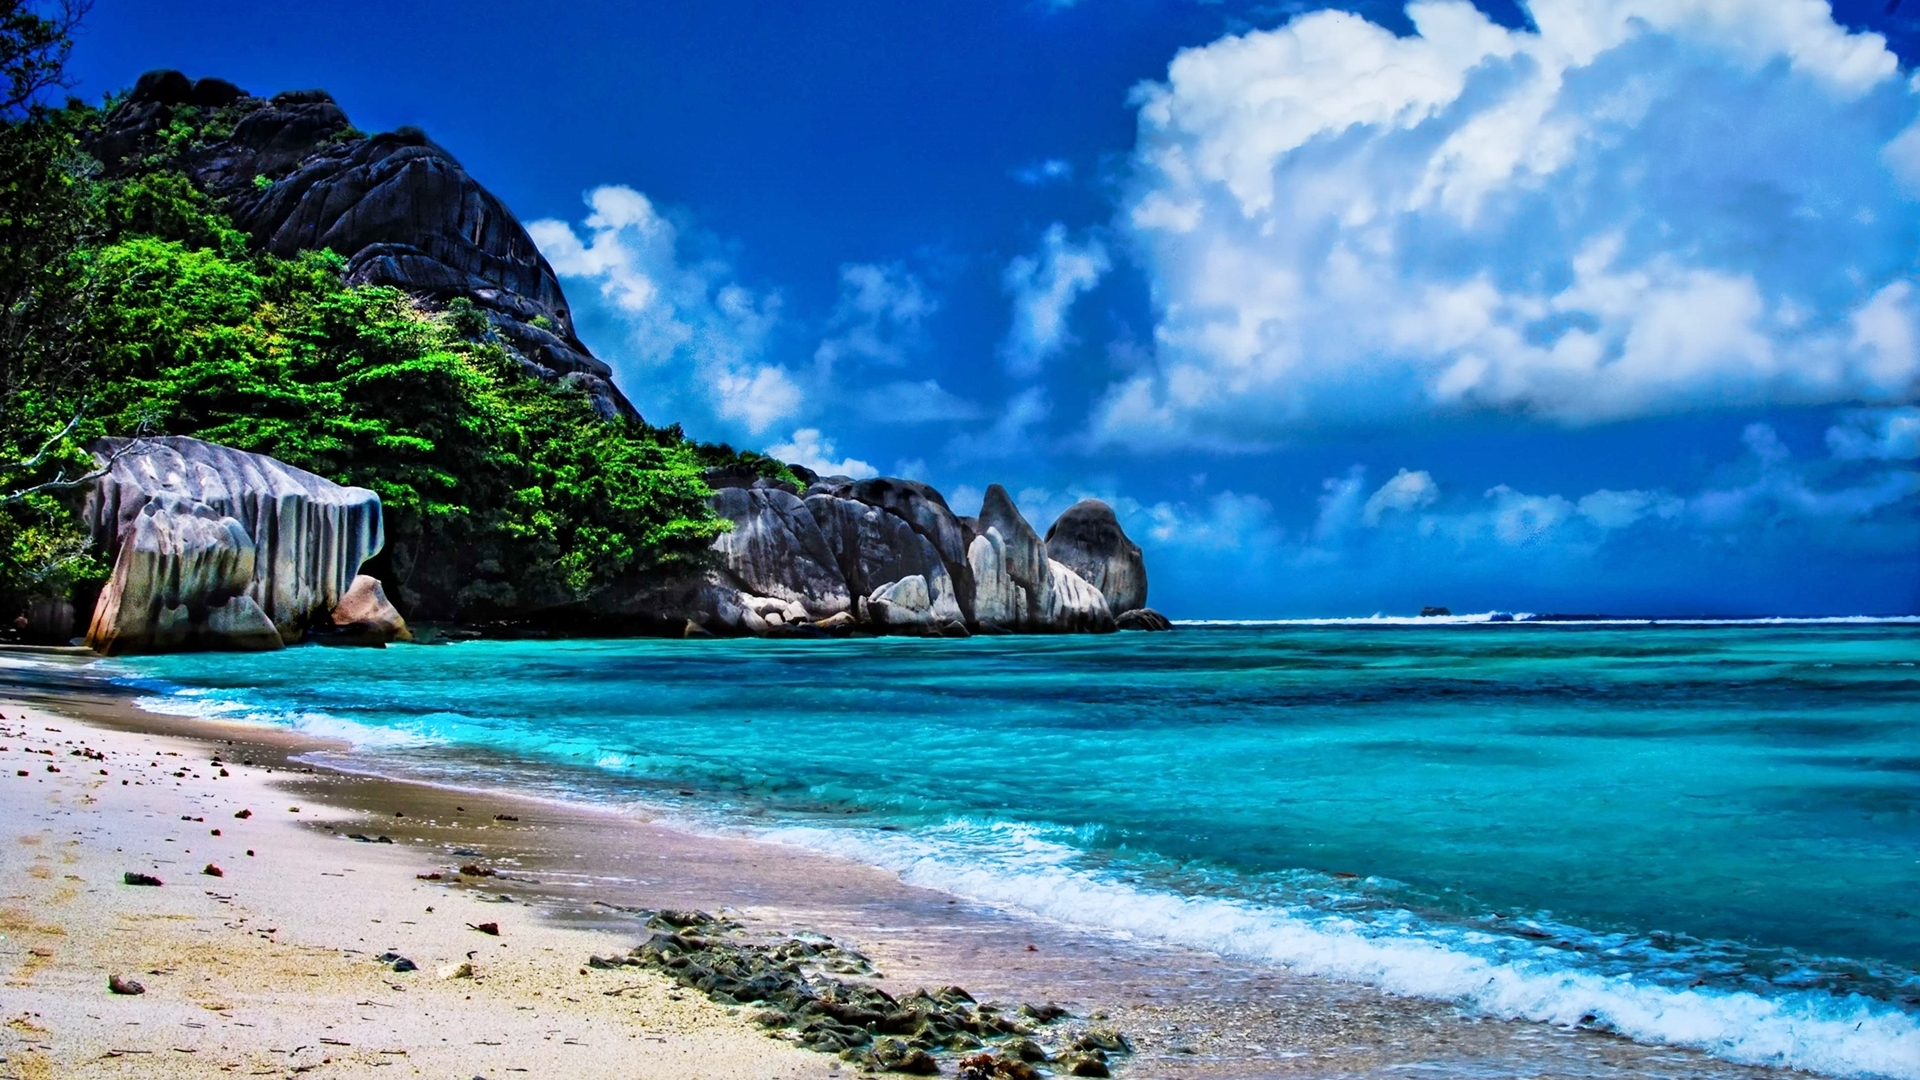 Anse Beach La Digue Isl Hd Desktop Background 1920x1080